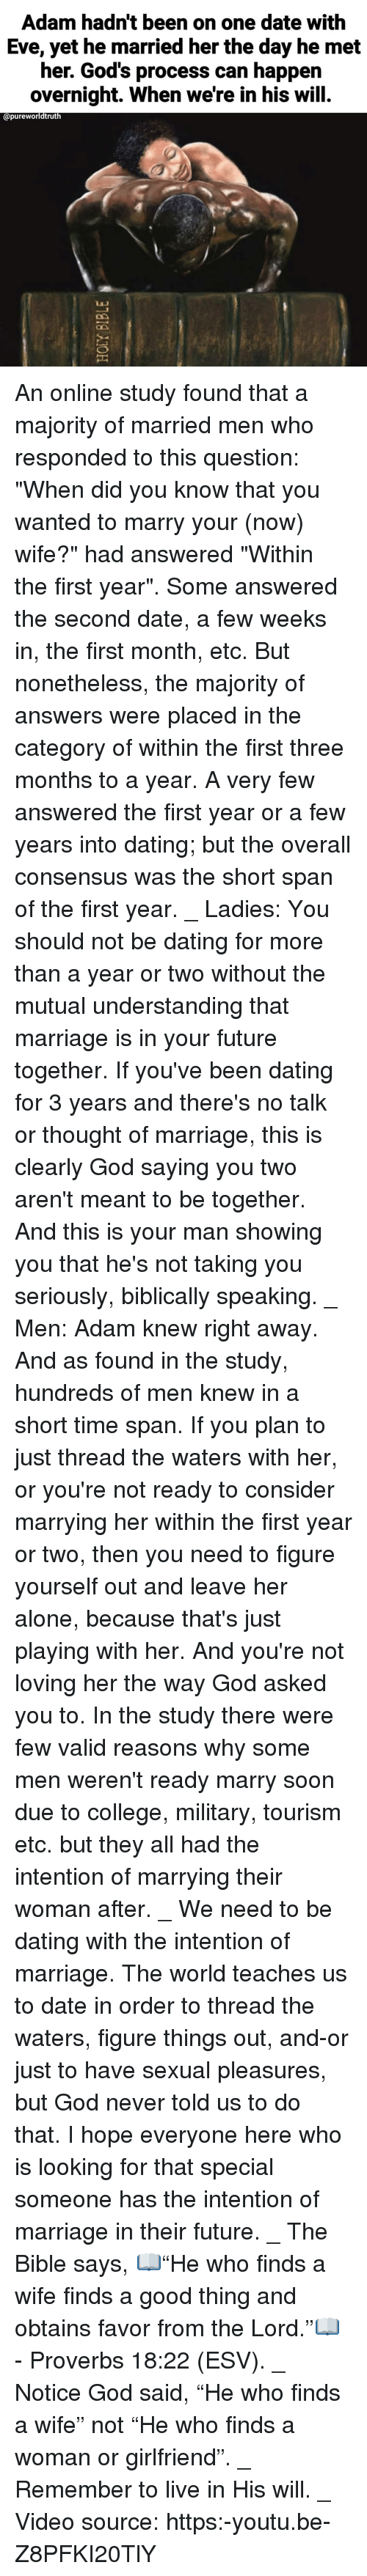 "Leave Her Alone: Adam hadn't been on one date with  Eve, yet he married her the day he met  her. God's process can happen  overnight. When we're in his will.  opureworldtruth  ไม่ An online study found that a majority of married men who responded to this question: ""When did you know that you wanted to marry your (now) wife?"" had answered ""Within the first year"". Some answered the second date, a few weeks in, the first month, etc. But nonetheless, the majority of answers were placed in the category of within the first three months to a year. A very few answered the first year or a few years into dating; but the overall consensus was the short span of the first year. _ Ladies: You should not be dating for more than a year or two without the mutual understanding that marriage is in your future together. If you've been dating for 3 years and there's no talk or thought of marriage, this is clearly God saying you two aren't meant to be together. And this is your man showing you that he's not taking you seriously, biblically speaking. _ Men: Adam knew right away. And as found in the study, hundreds of men knew in a short time span. If you plan to just thread the waters with her, or you're not ready to consider marrying her within the first year or two, then you need to figure yourself out and leave her alone, because that's just playing with her. And you're not loving her the way God asked you to. In the study there were few valid reasons why some men weren't ready marry soon due to college, military, tourism etc. but they all had the intention of marrying their woman after. _ We need to be dating with the intention of marriage. The world teaches us to date in order to thread the waters, figure things out, and-or just to have sexual pleasures, but God never told us to do that. I hope everyone here who is looking for that special someone has the intention of marriage in their future. _ The Bible says, 📖""He who finds a wife finds a good thing and obtains favor from the Lord.""📖 - Proverbs 18:22 (ESV). _ Notice God said, ""He who finds a wife"" not ""He who finds a woman or girlfriend"". _ Remember to live in His will. _ Video source: https:-youtu.be-Z8PFKI20TlY"